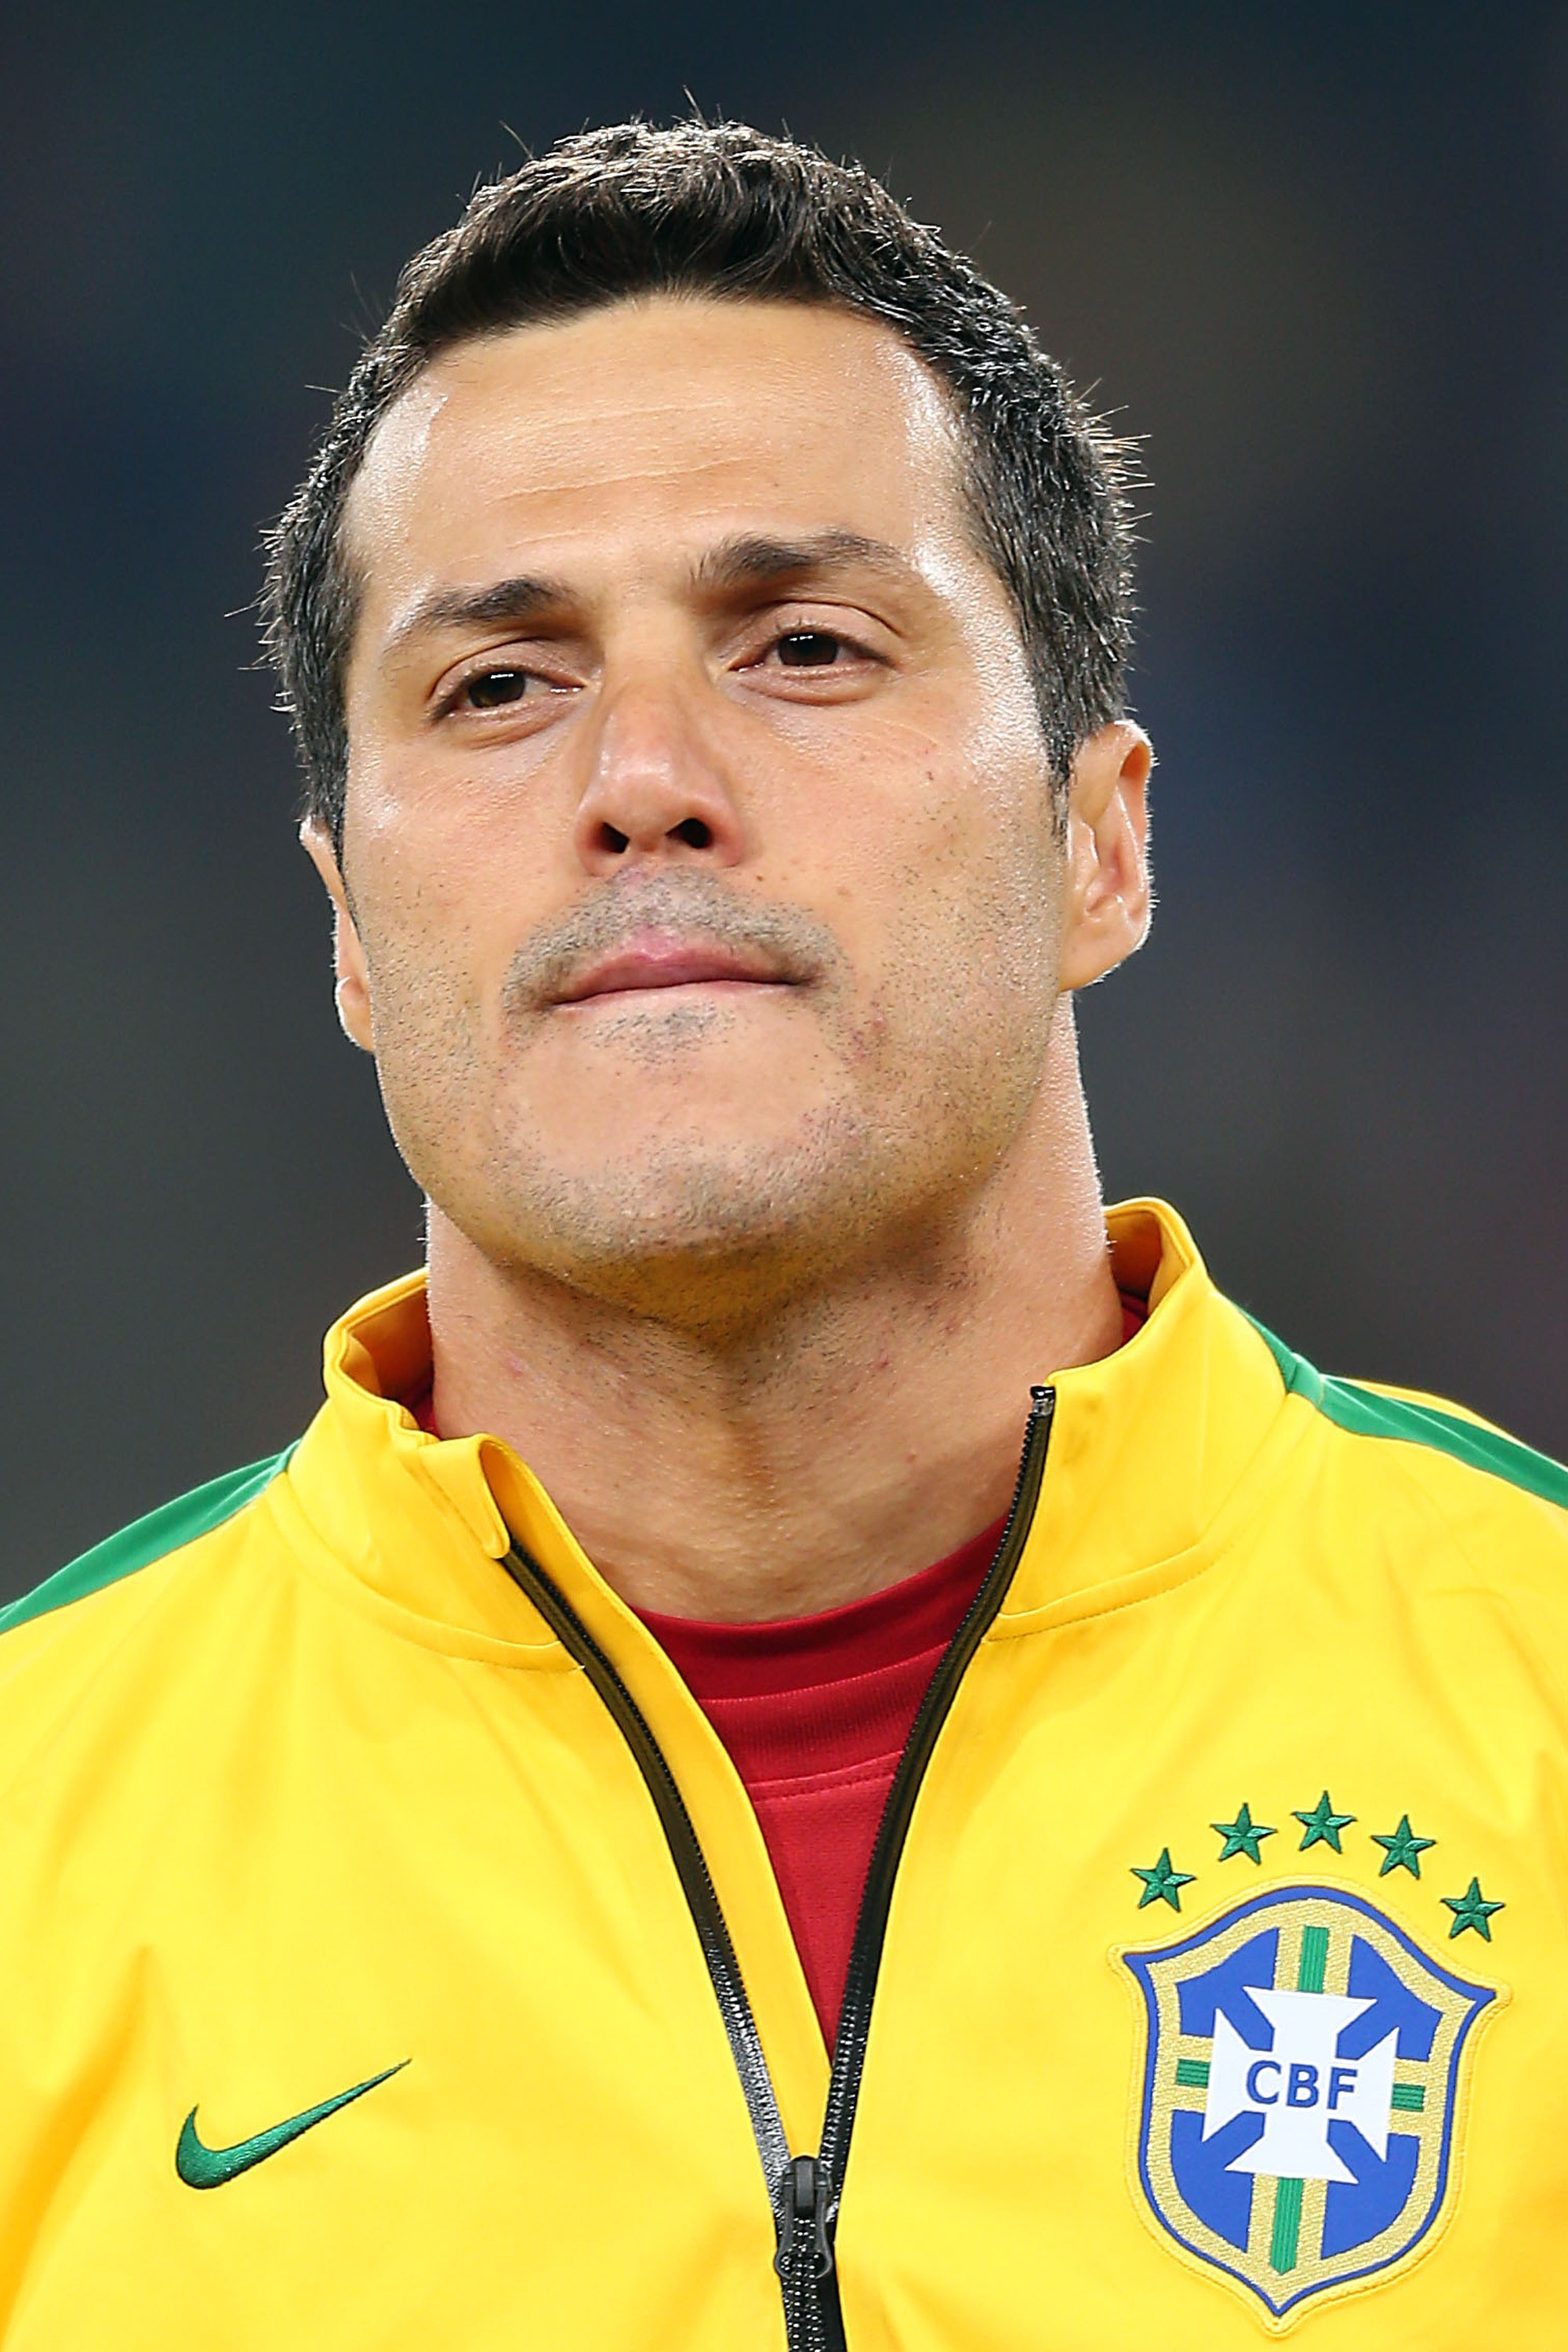 Julio Cesar | Known people - famous people news and ...